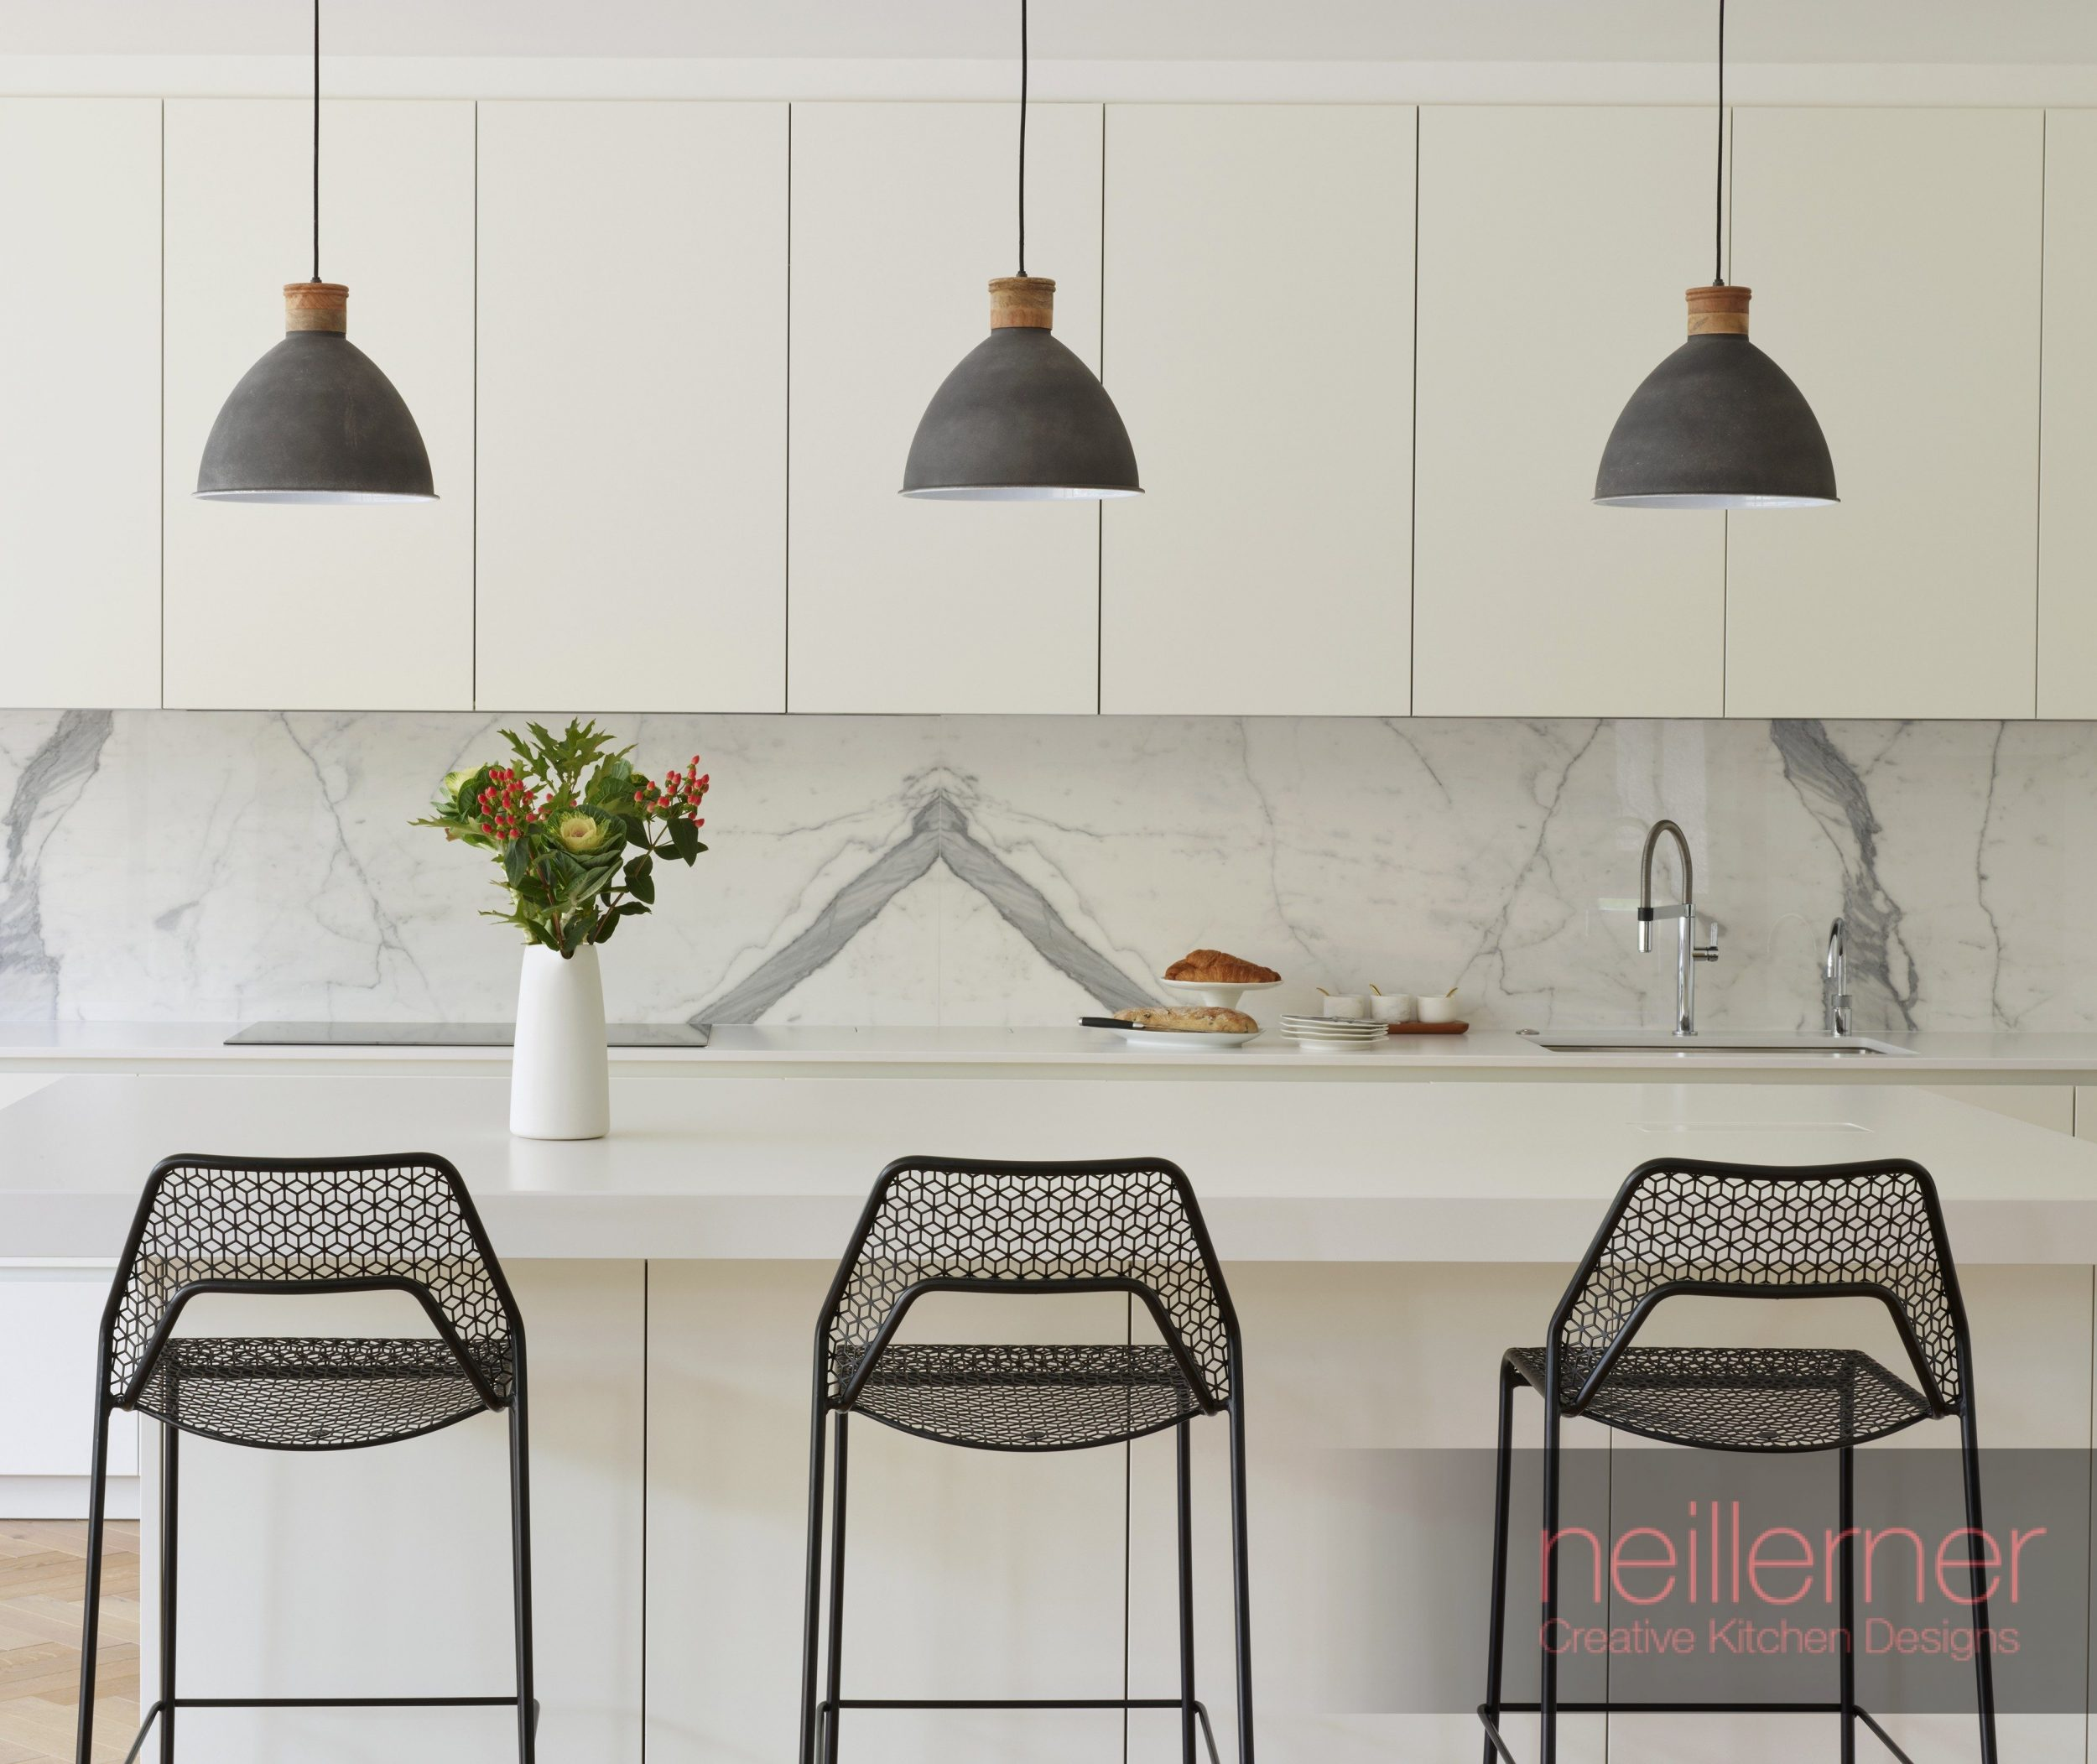 New Modern Kitchens At Neil Lerner: Luxury Fitted Kitchen Designs Park Royal, London